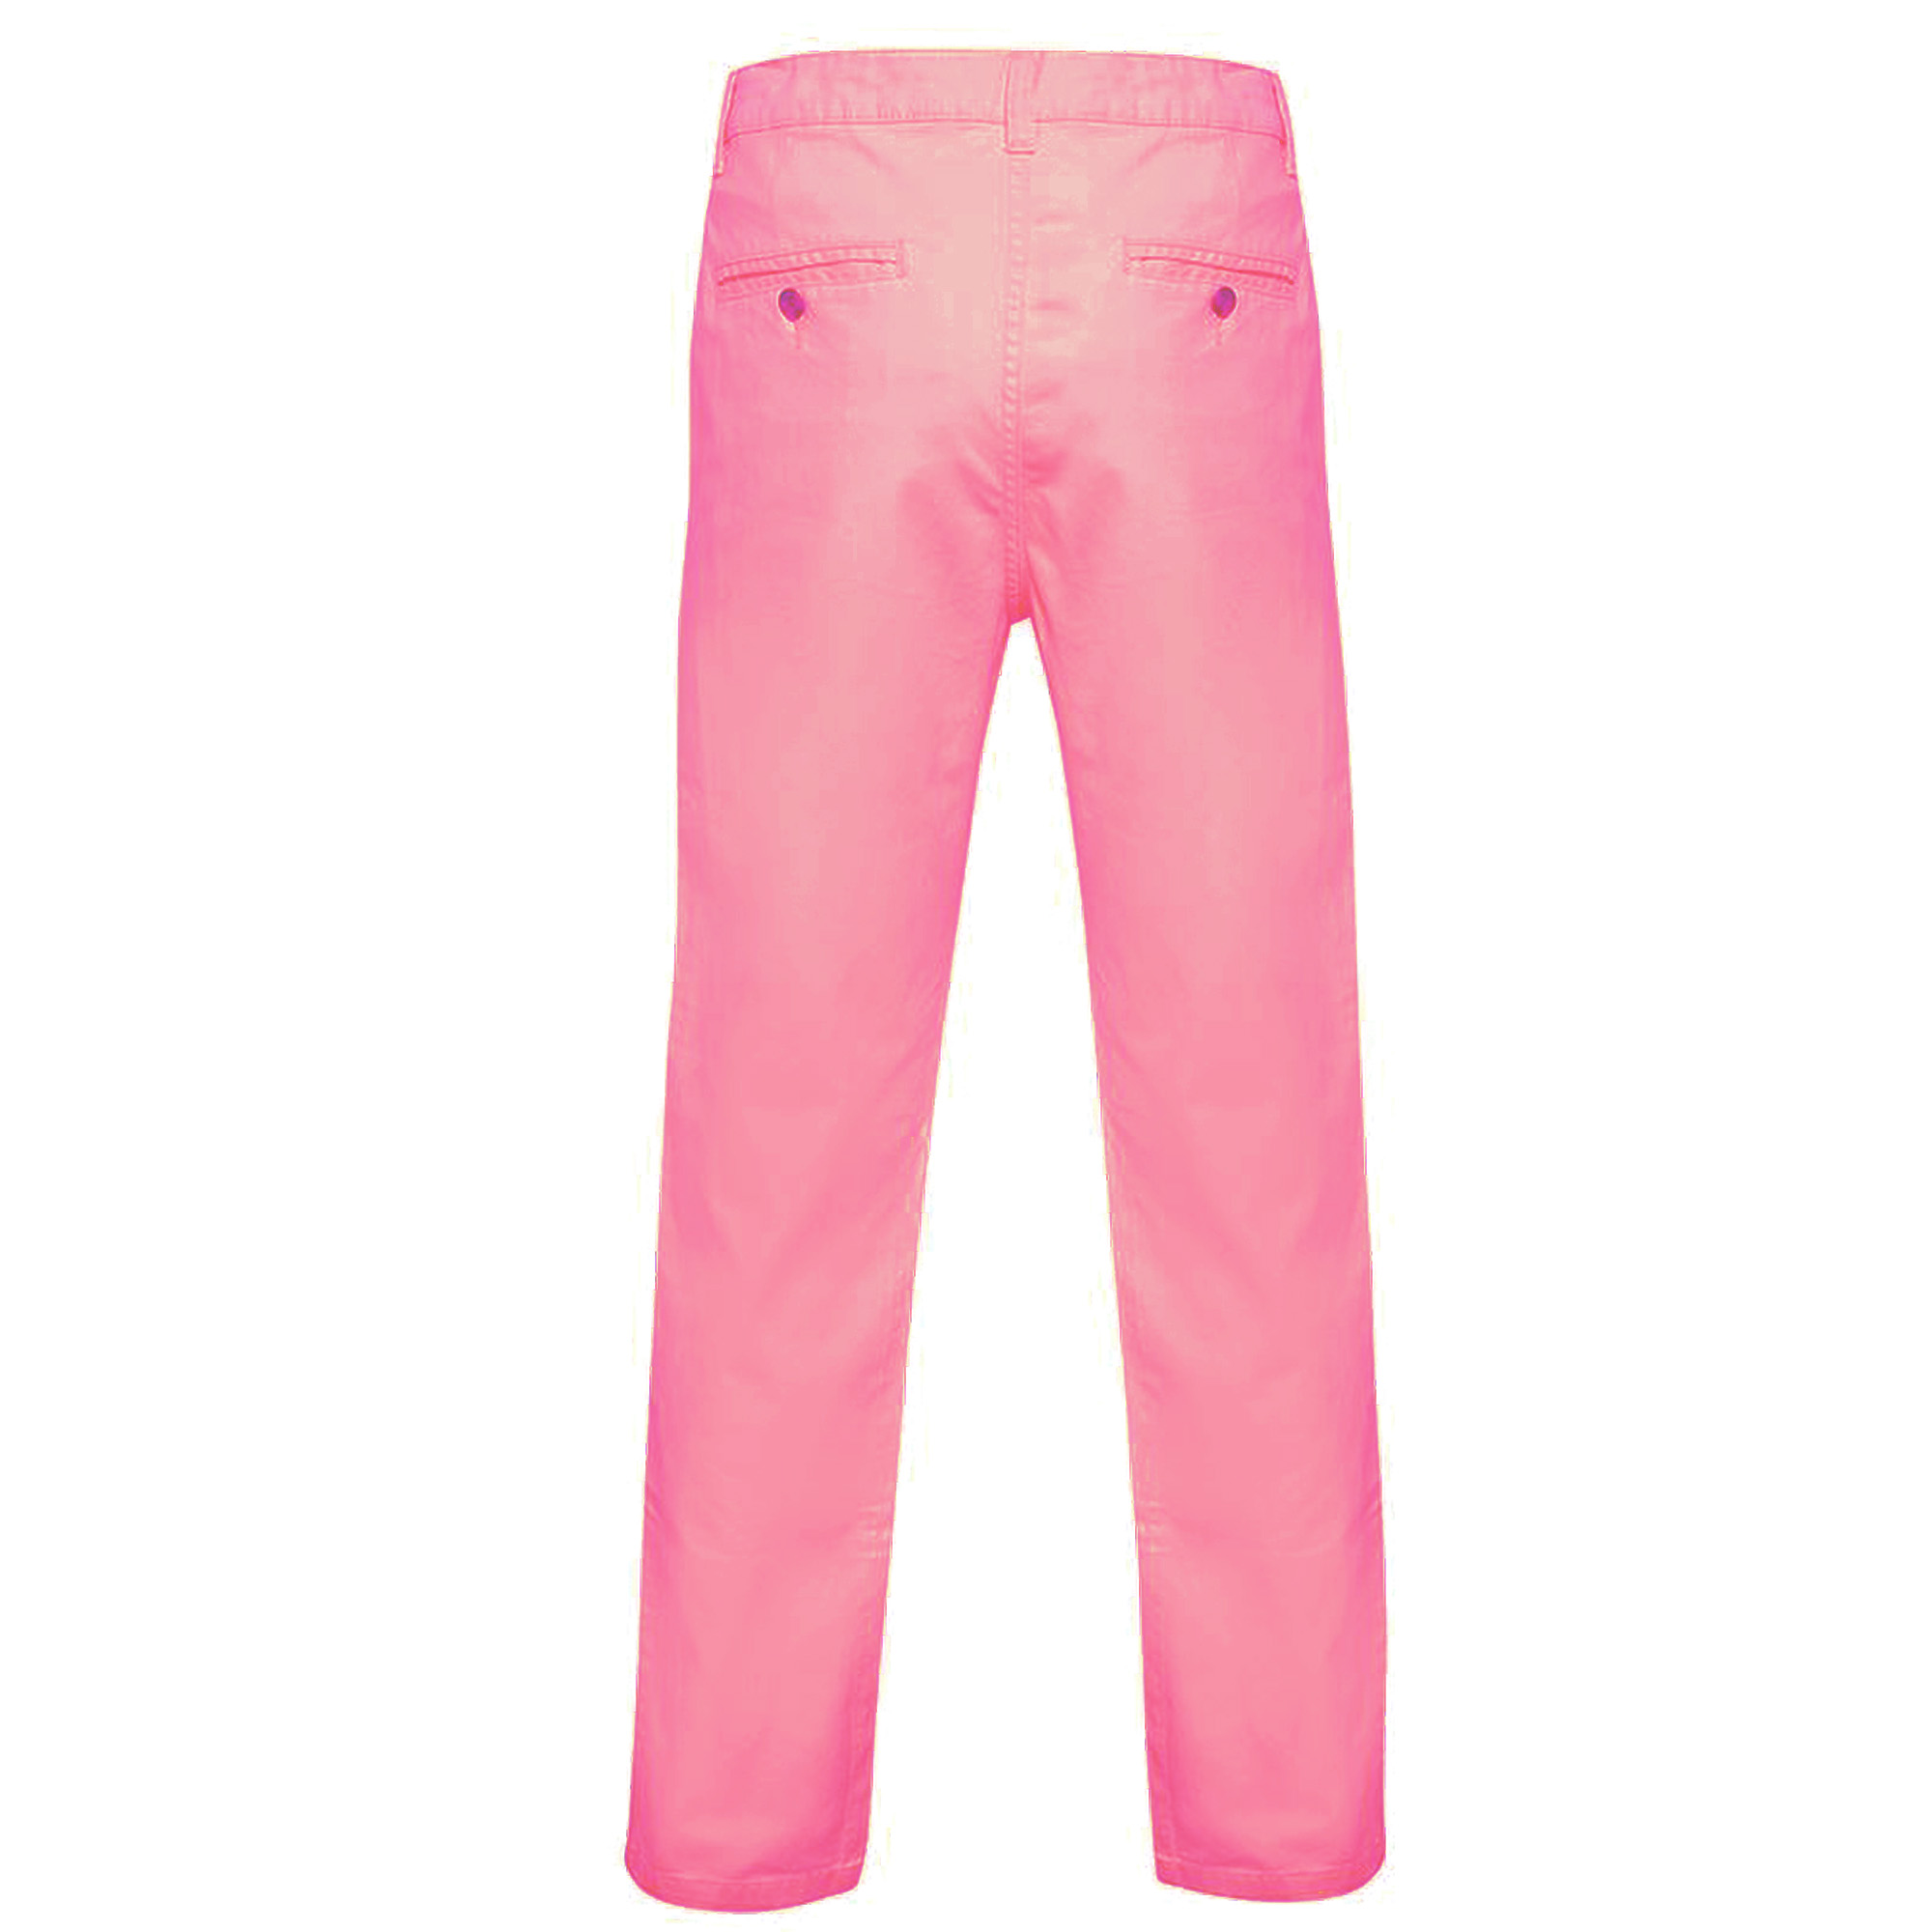 Asquith & Fox Mens Classic Casual Chinos/Trousers (3XLU) (Slate)